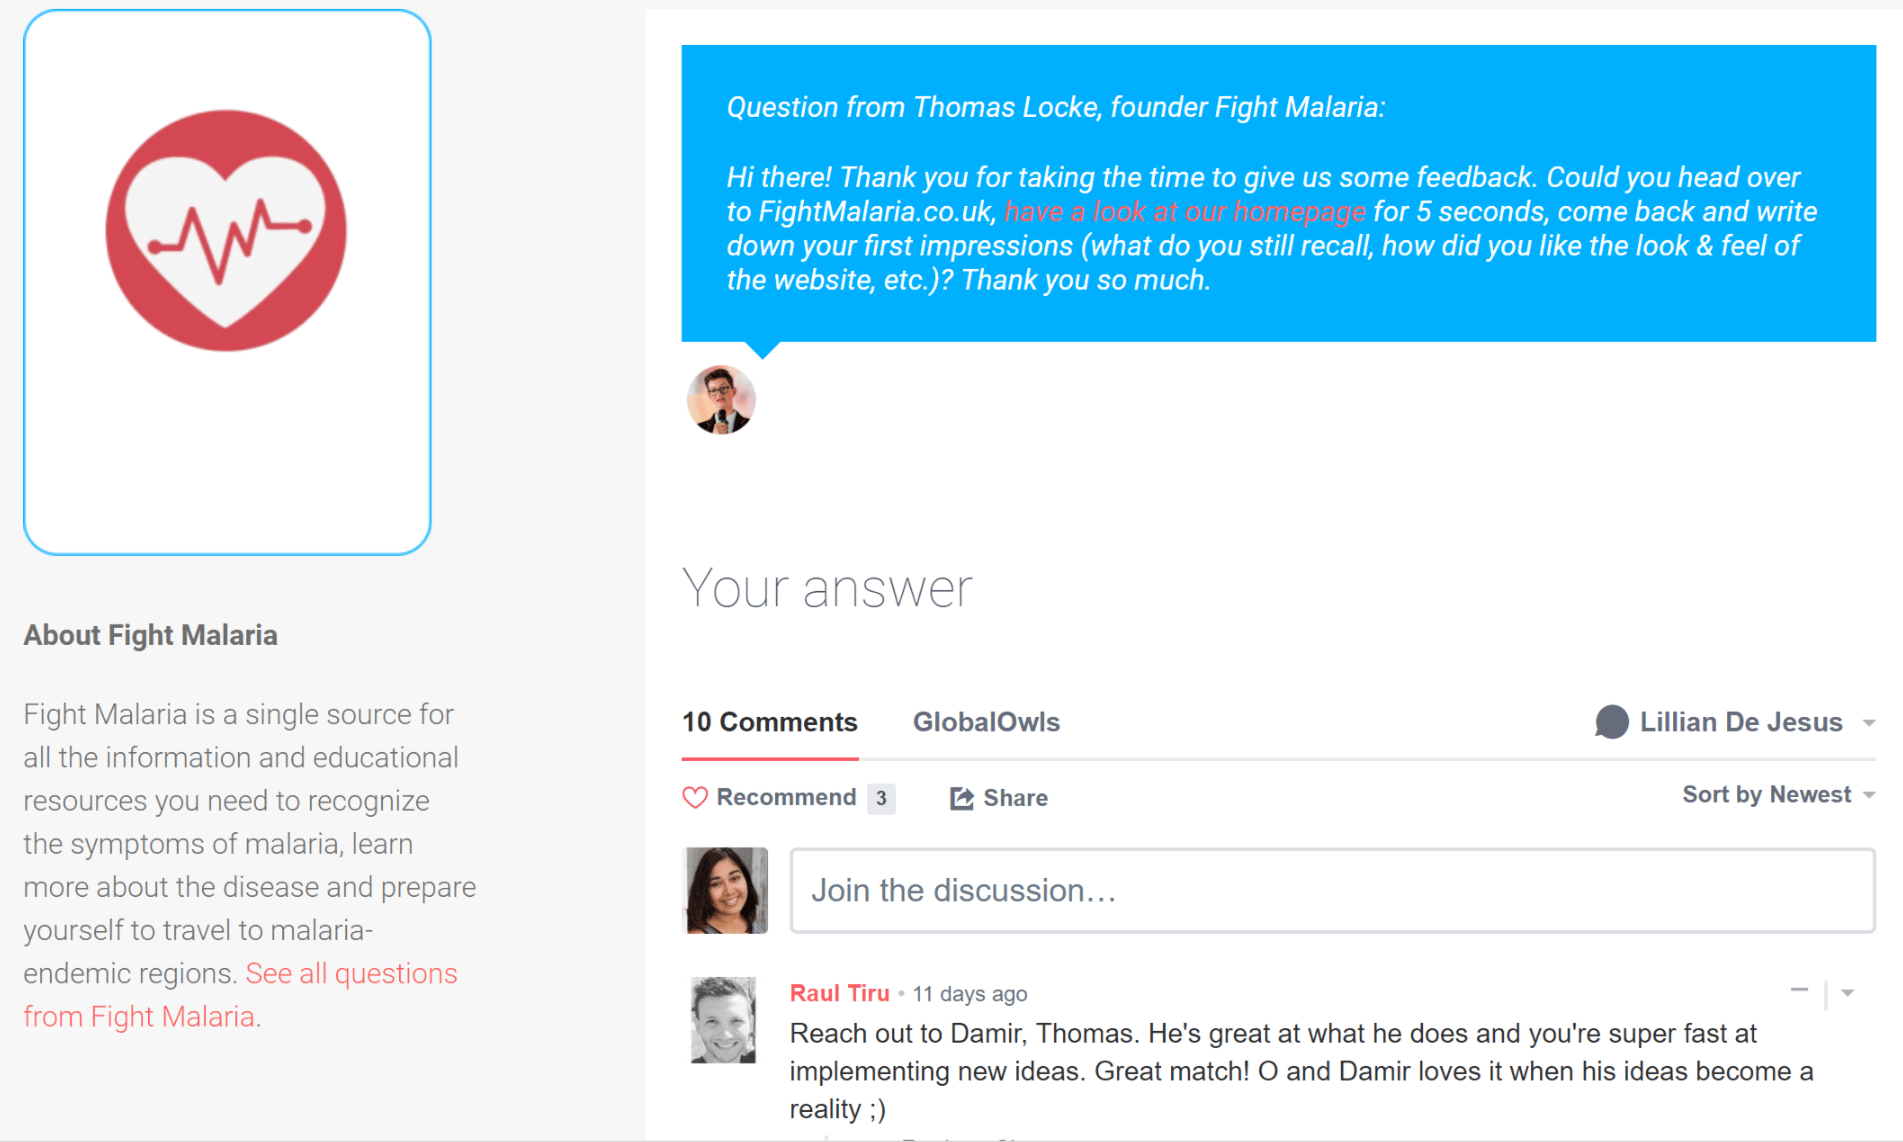 Question Example in GlobalOwls